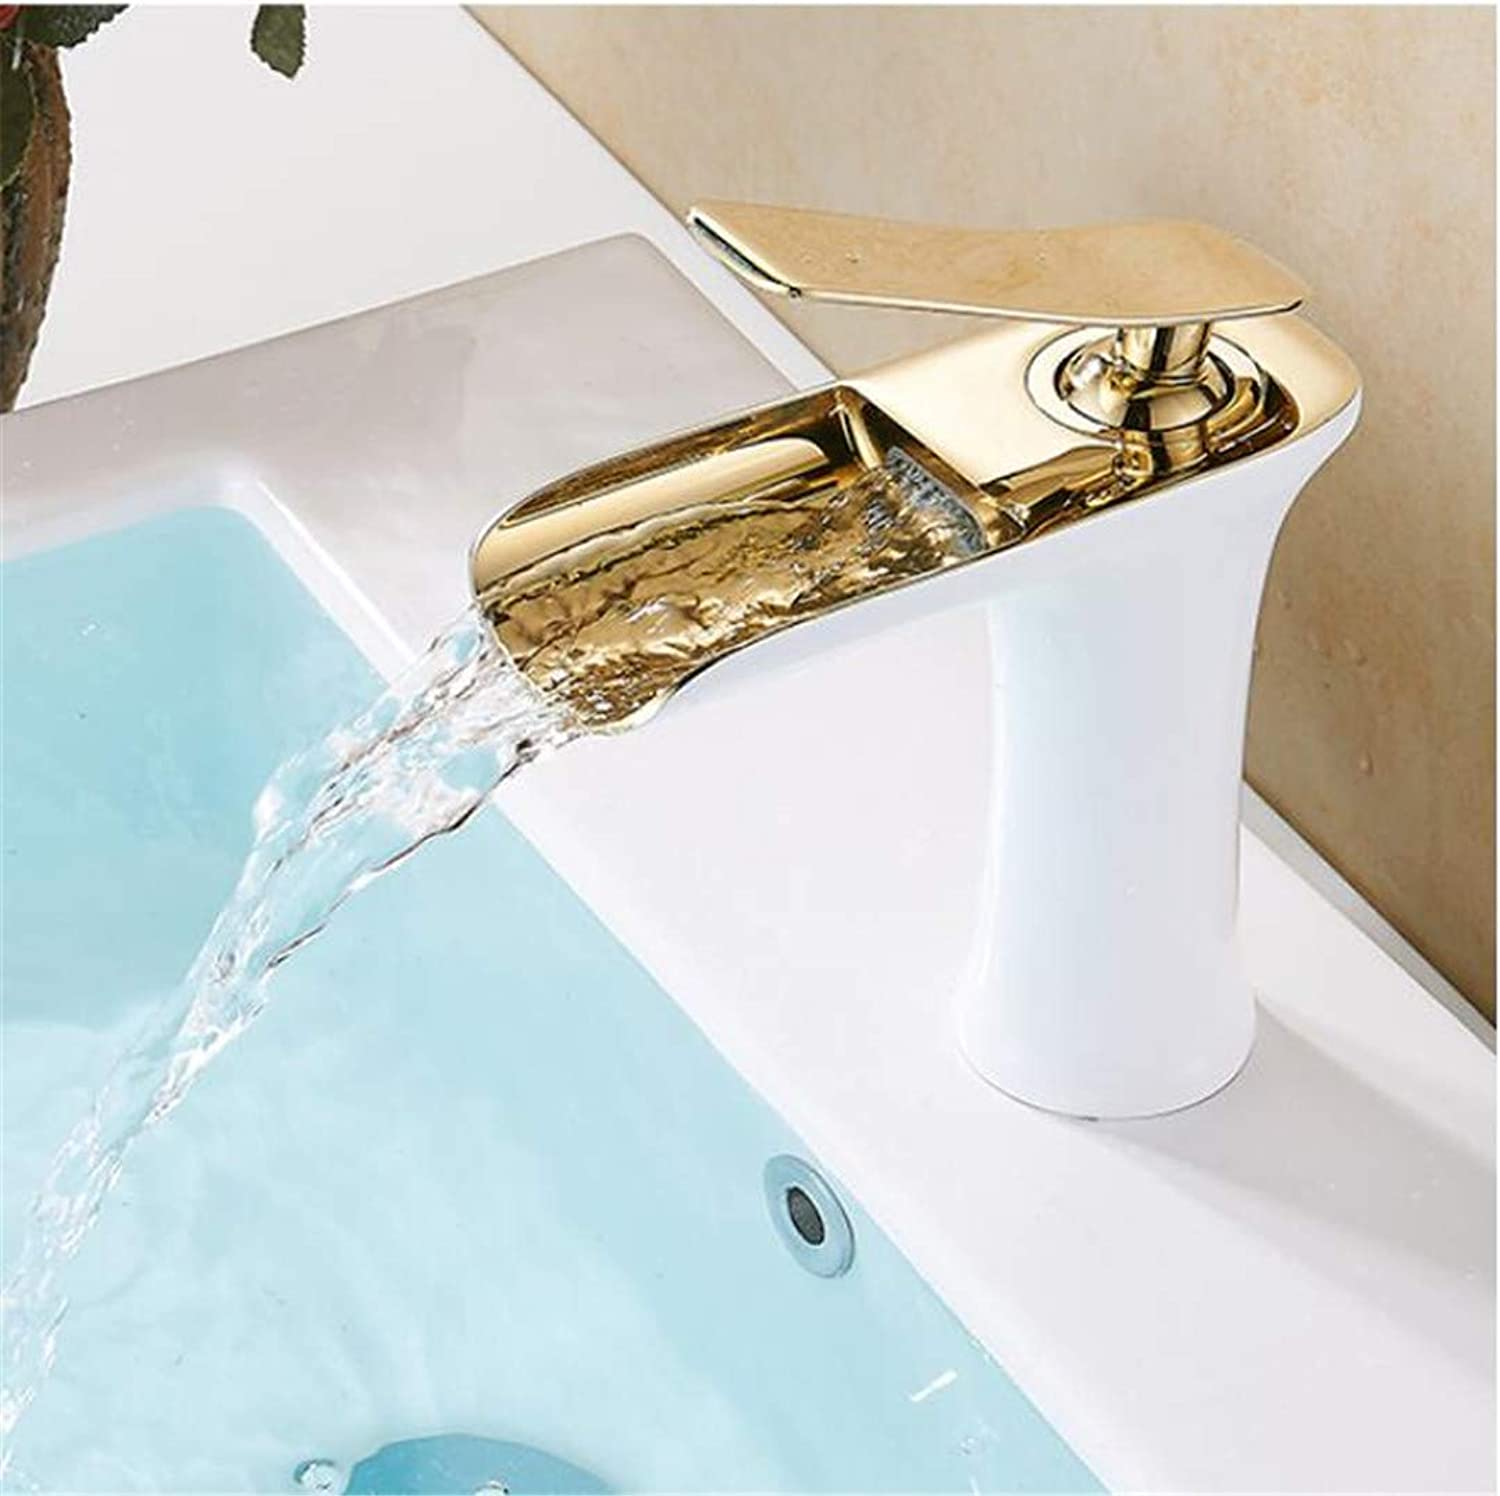 S-Senrohy Chrome & White color Waterfall Faucet Brass Bathroom Faucet Bathroom Basin Faucet Mixer Tap Hot & Cold Sink Faucet white and gold